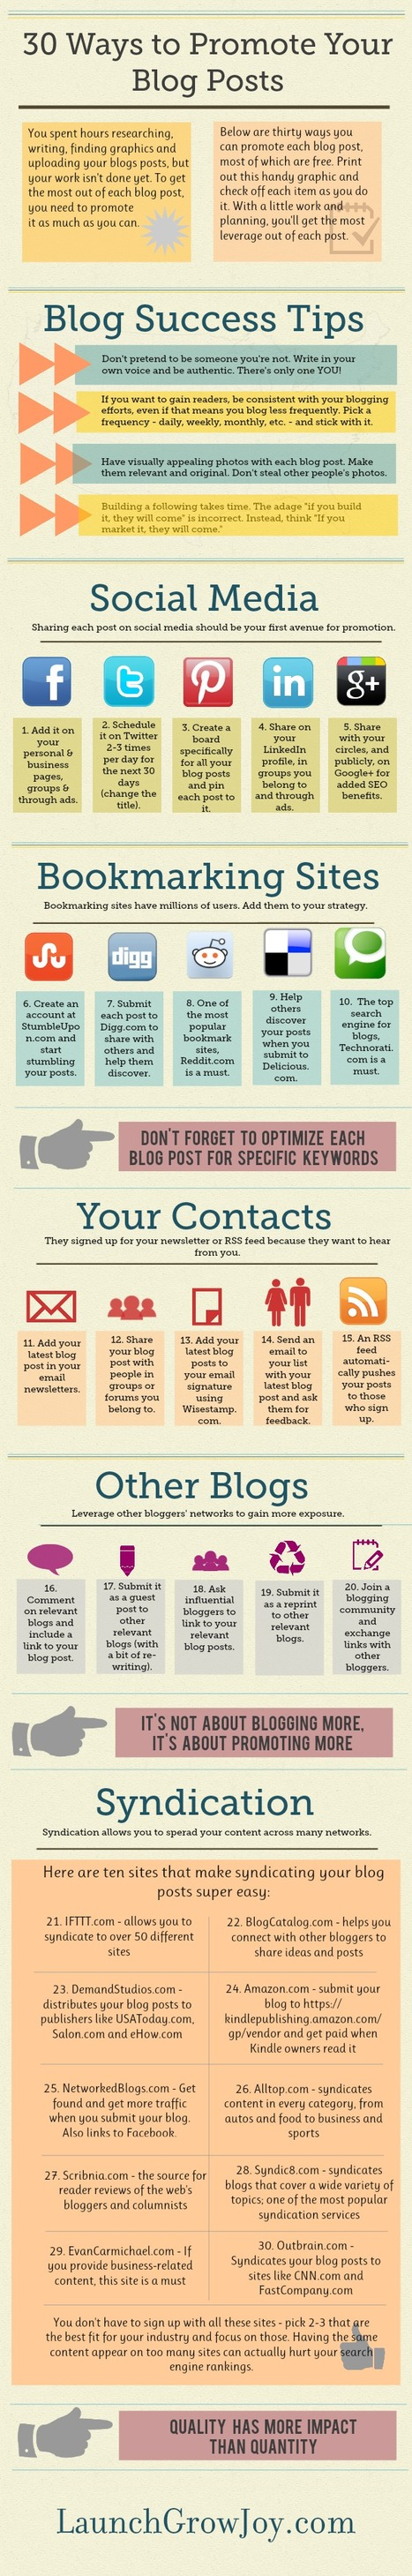 Infographic: How To Promote Your Blog Posts | Blogging fast | Scoop.it